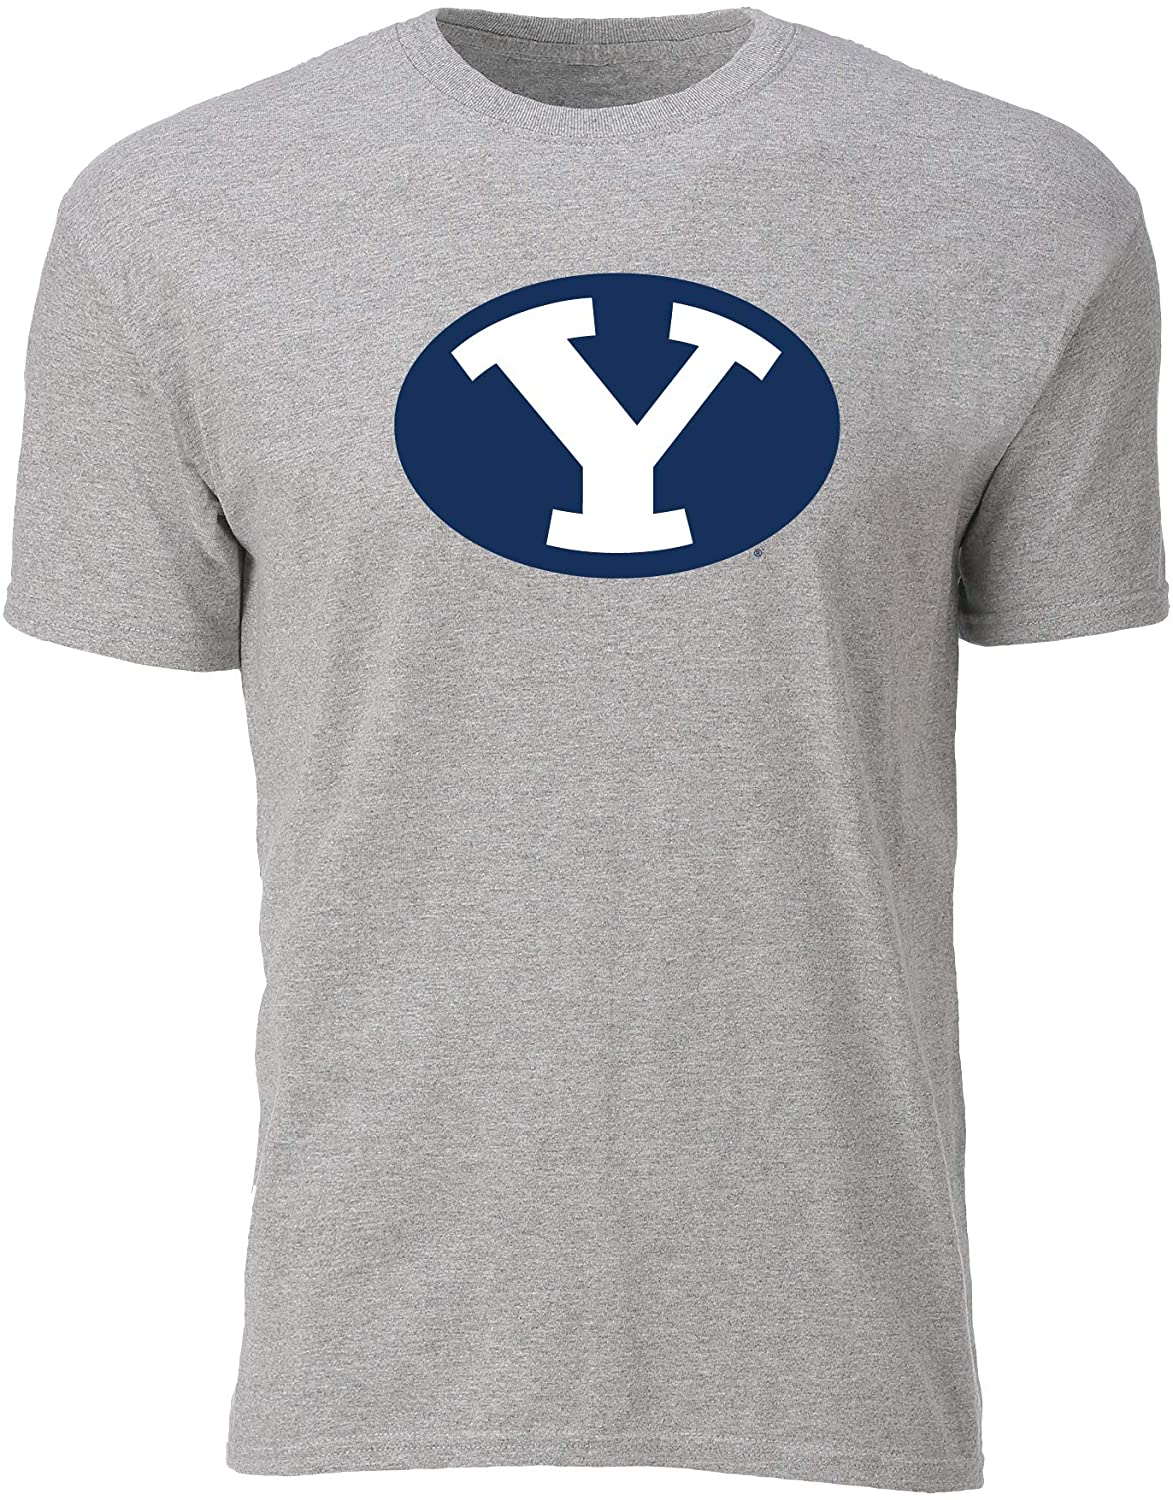 NCAA BYU Cougars Ouray Tee, Large, Oxford